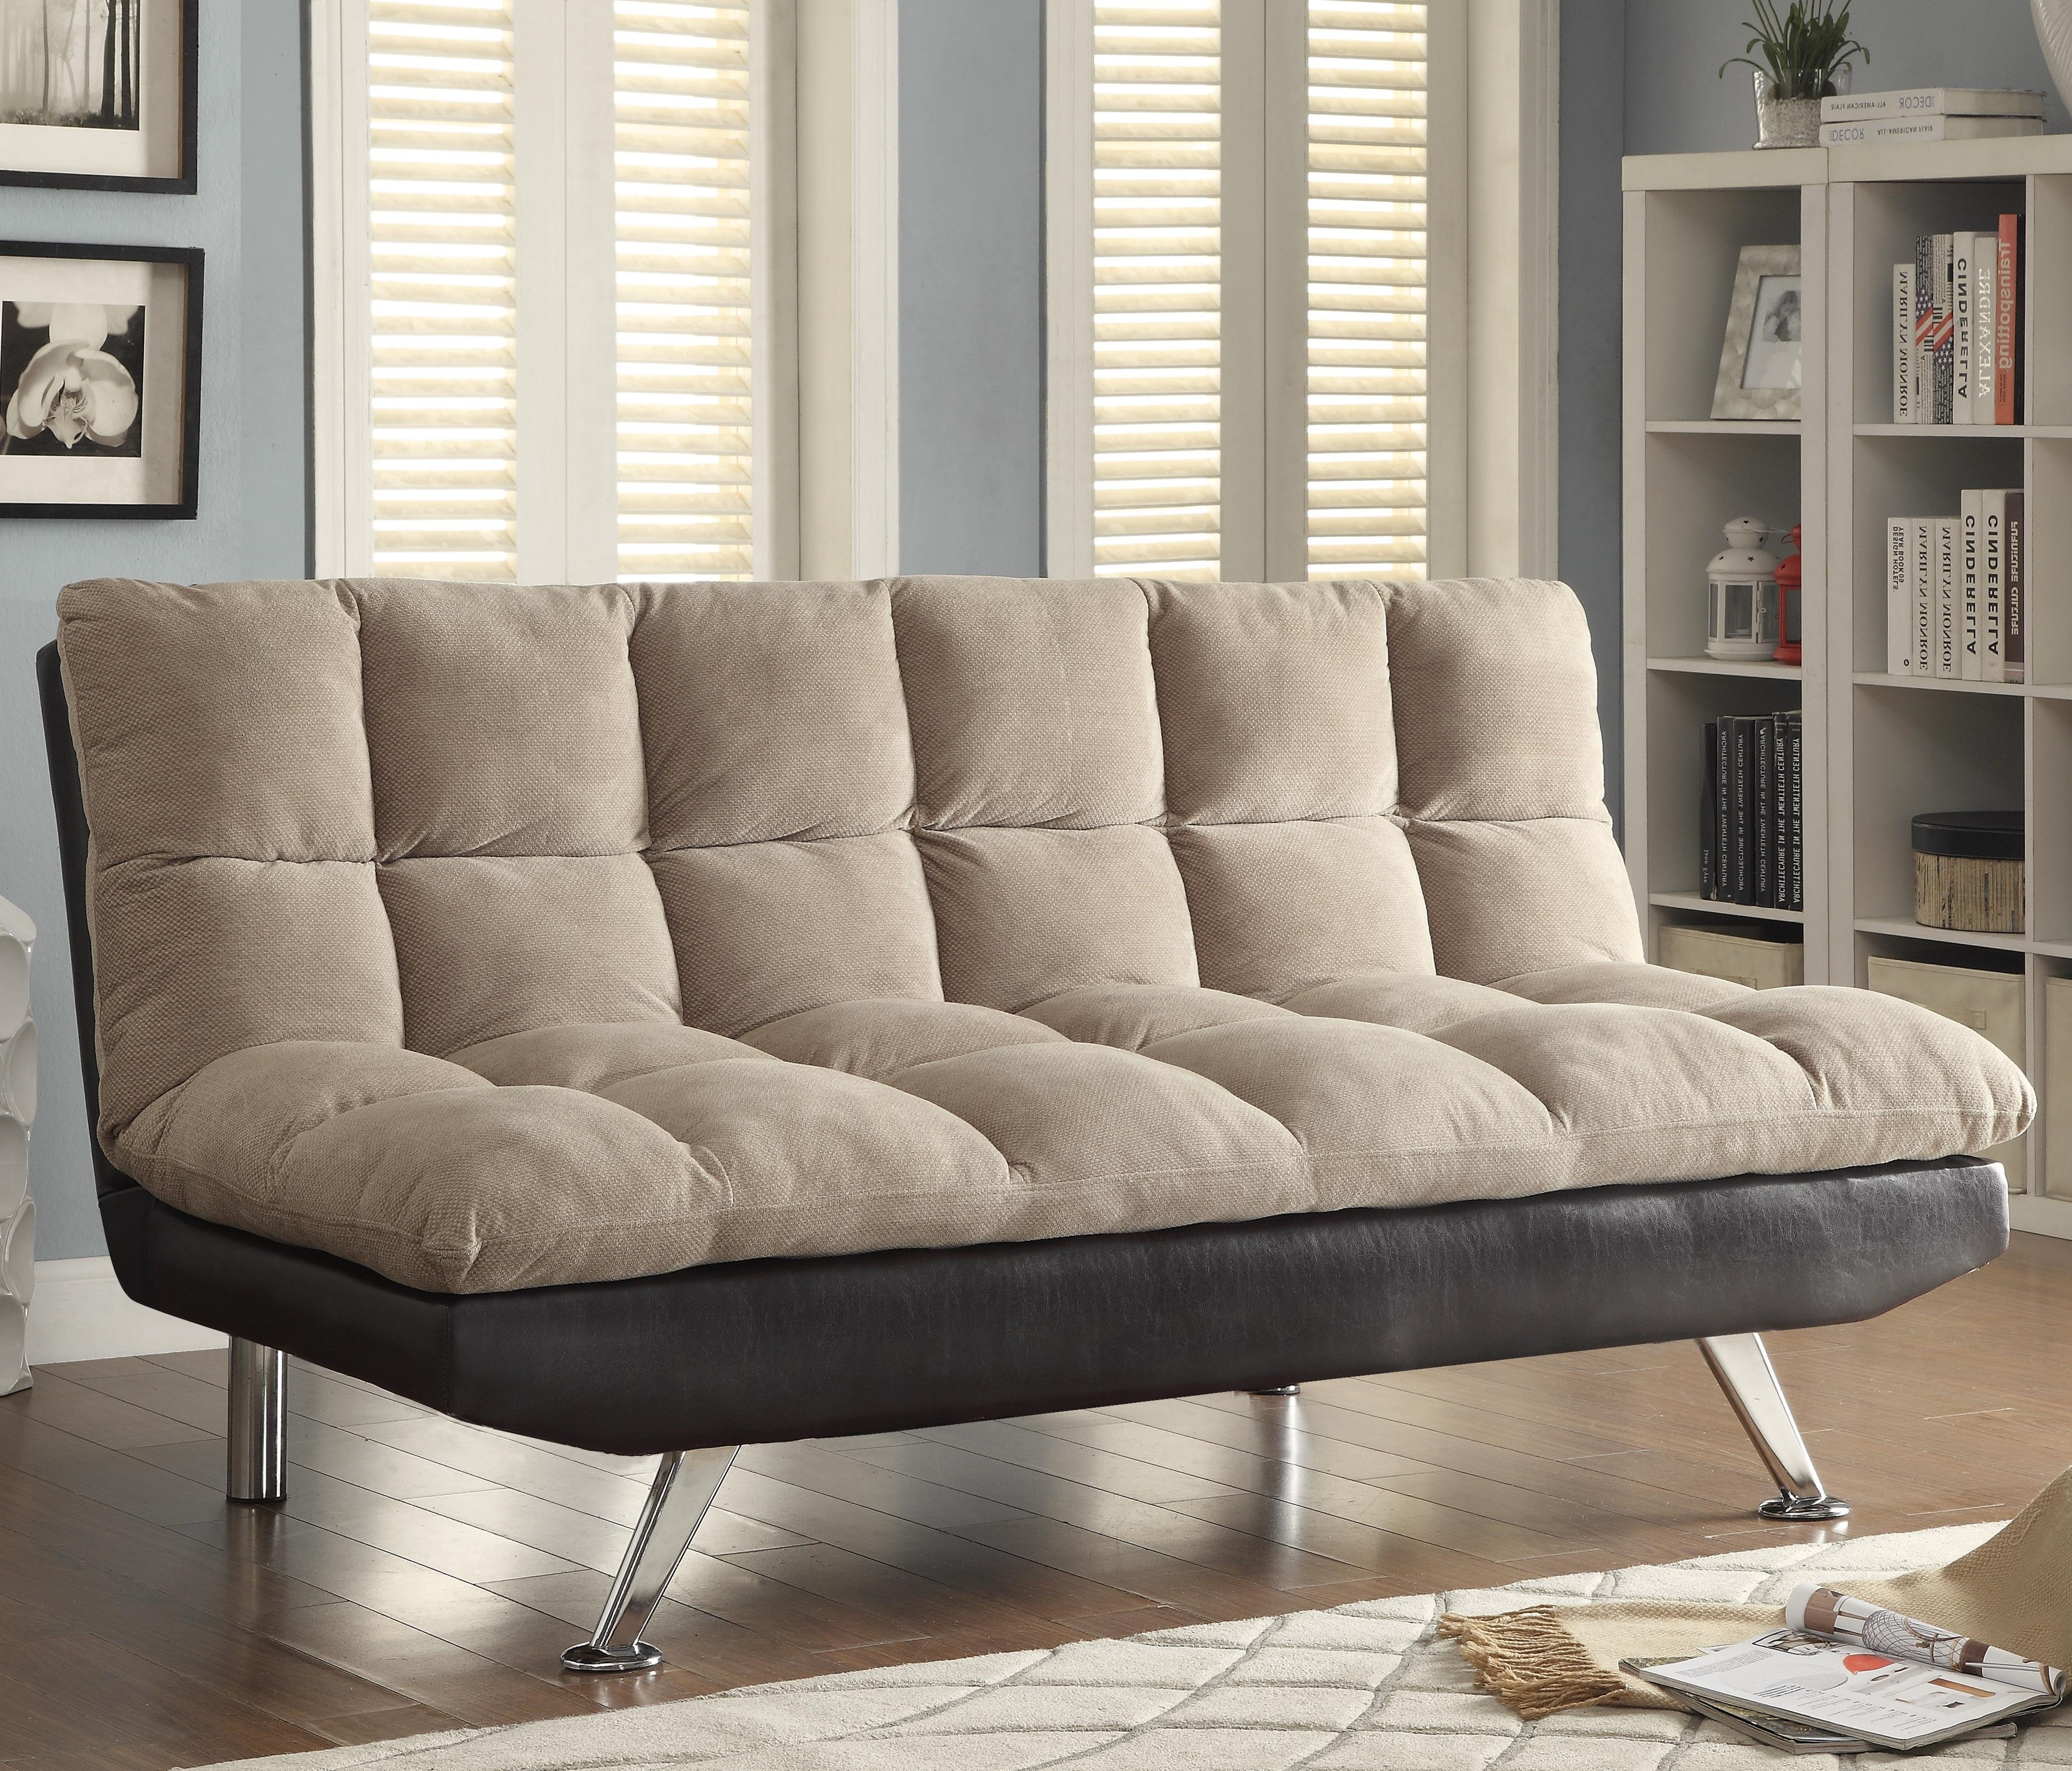 Sofa Beds And Futons – Two Tone Sofa Bed With Pillow Top Seating Throughout Current Two Tone Sofas (View 17 of 20)